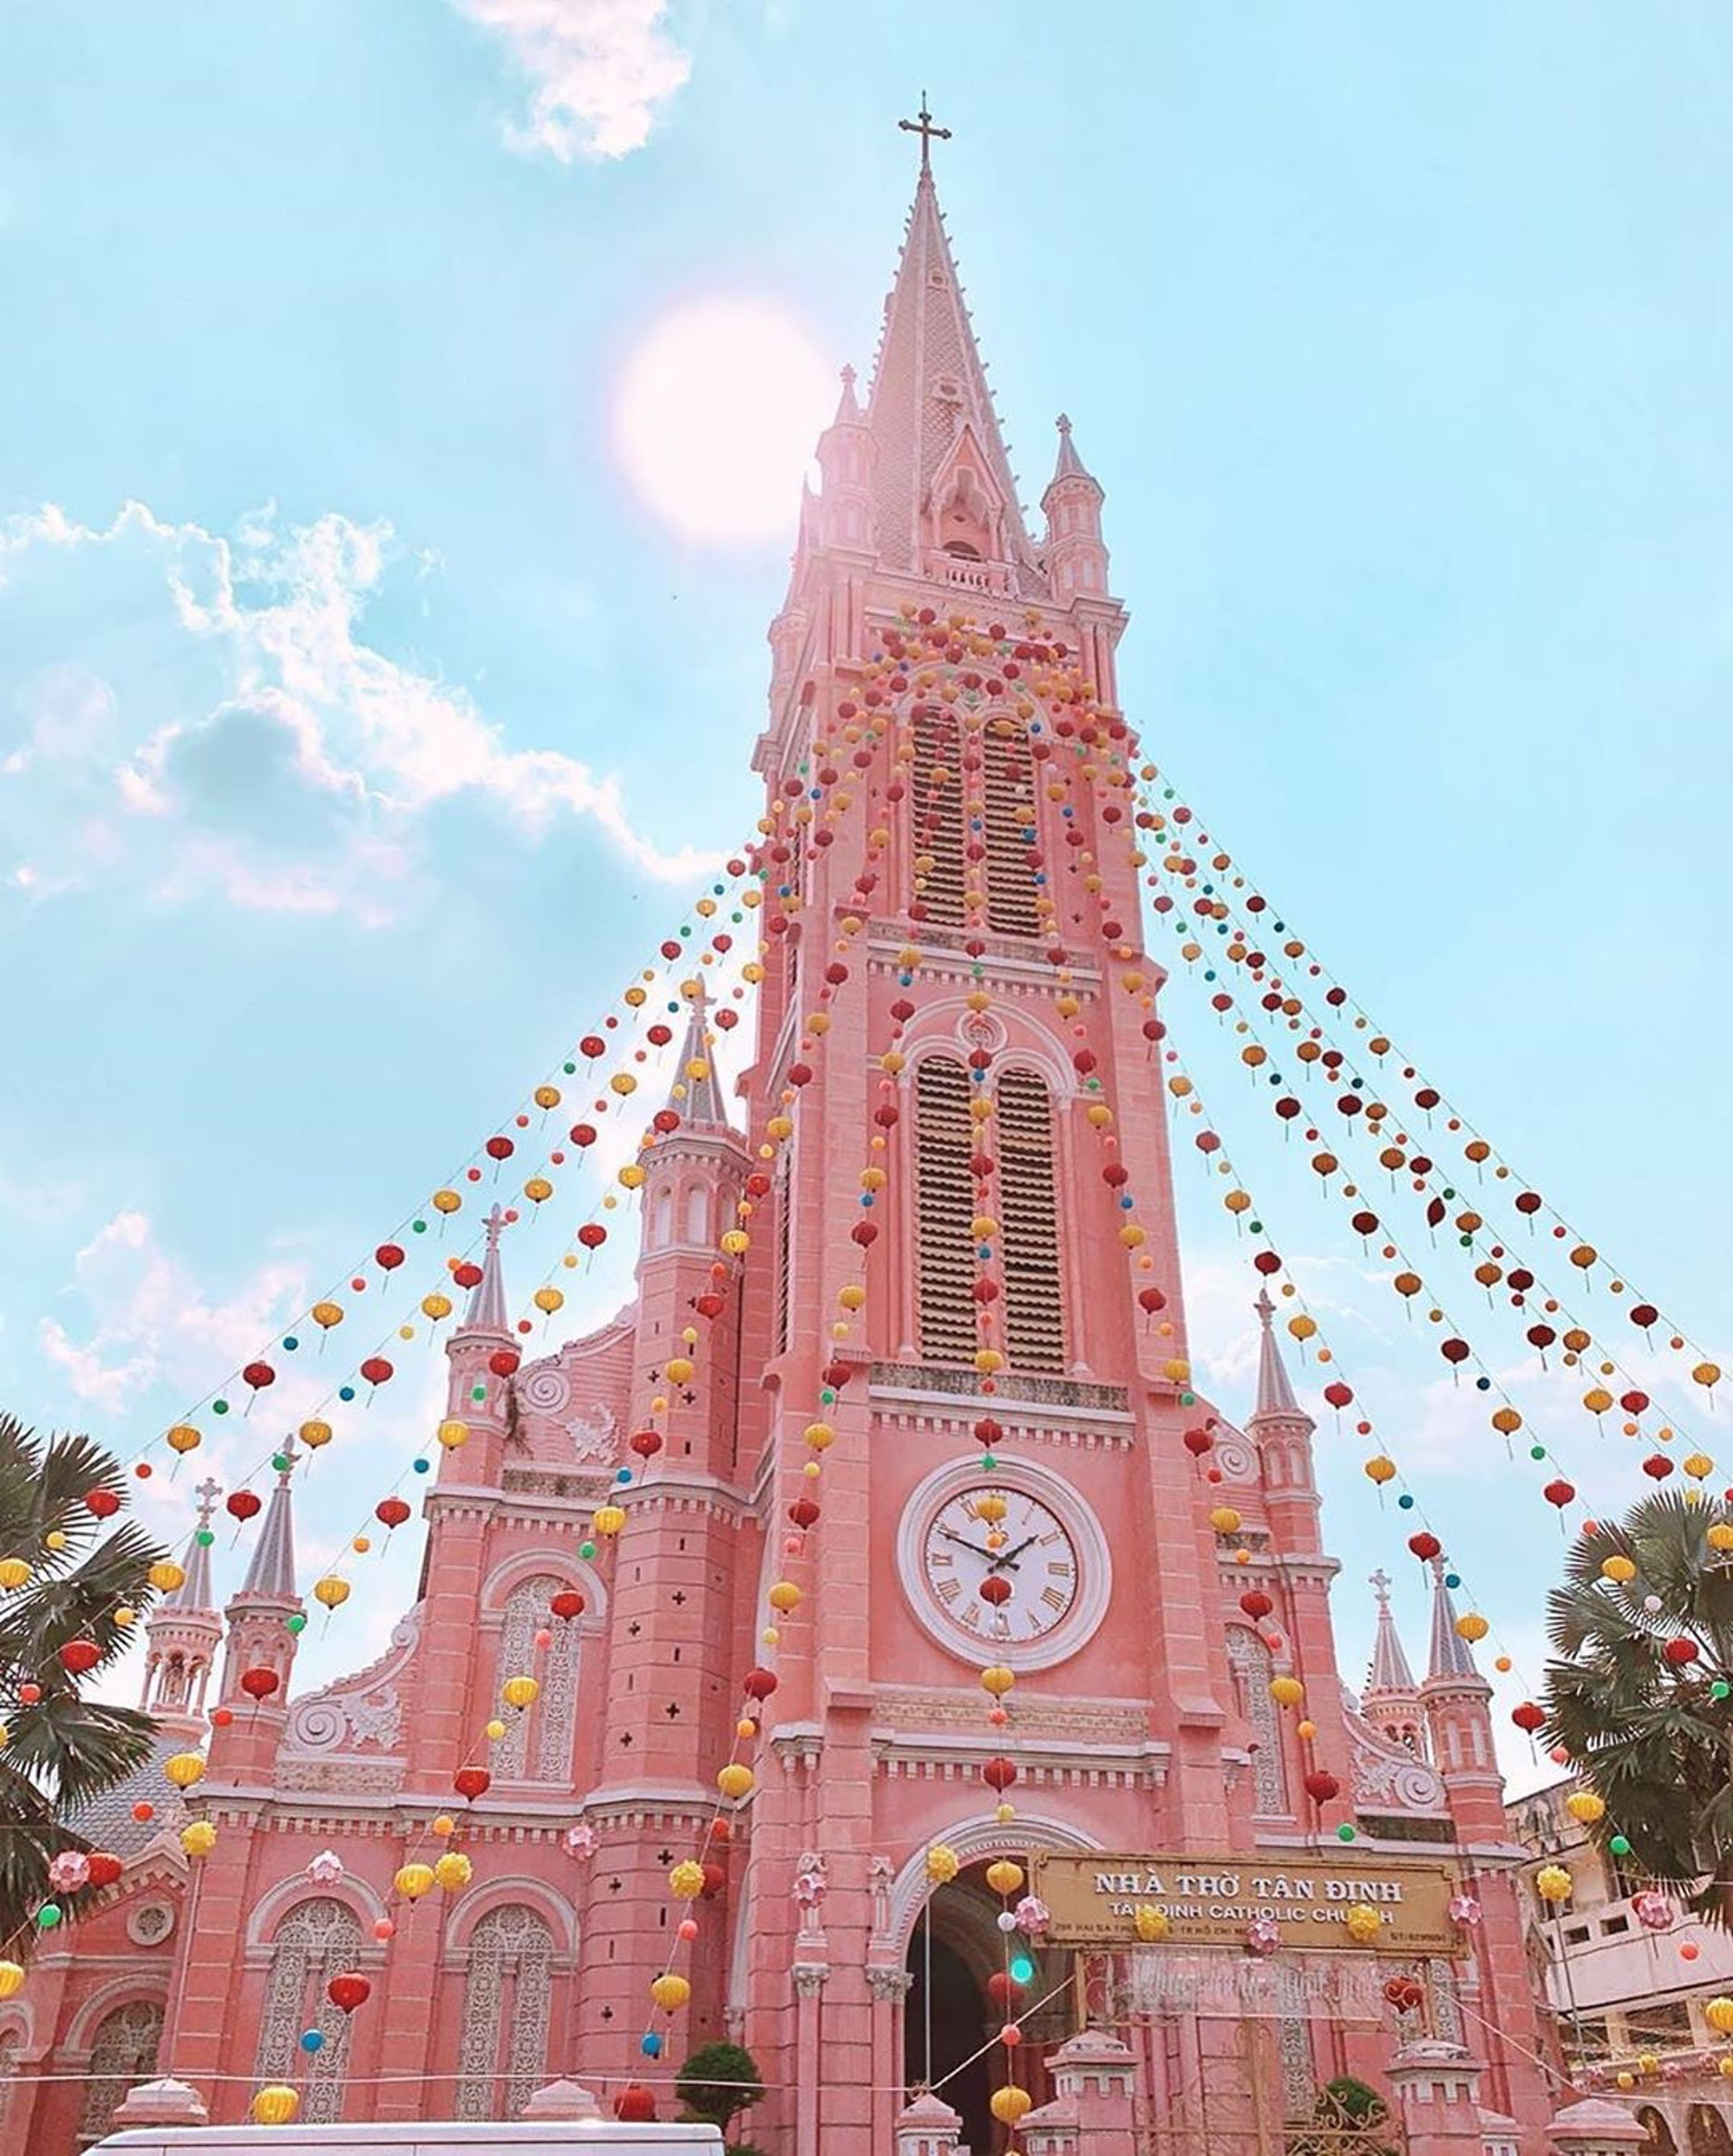 越南─粉紅教堂Tan Dinh Church(Ig@gapyear.travel)